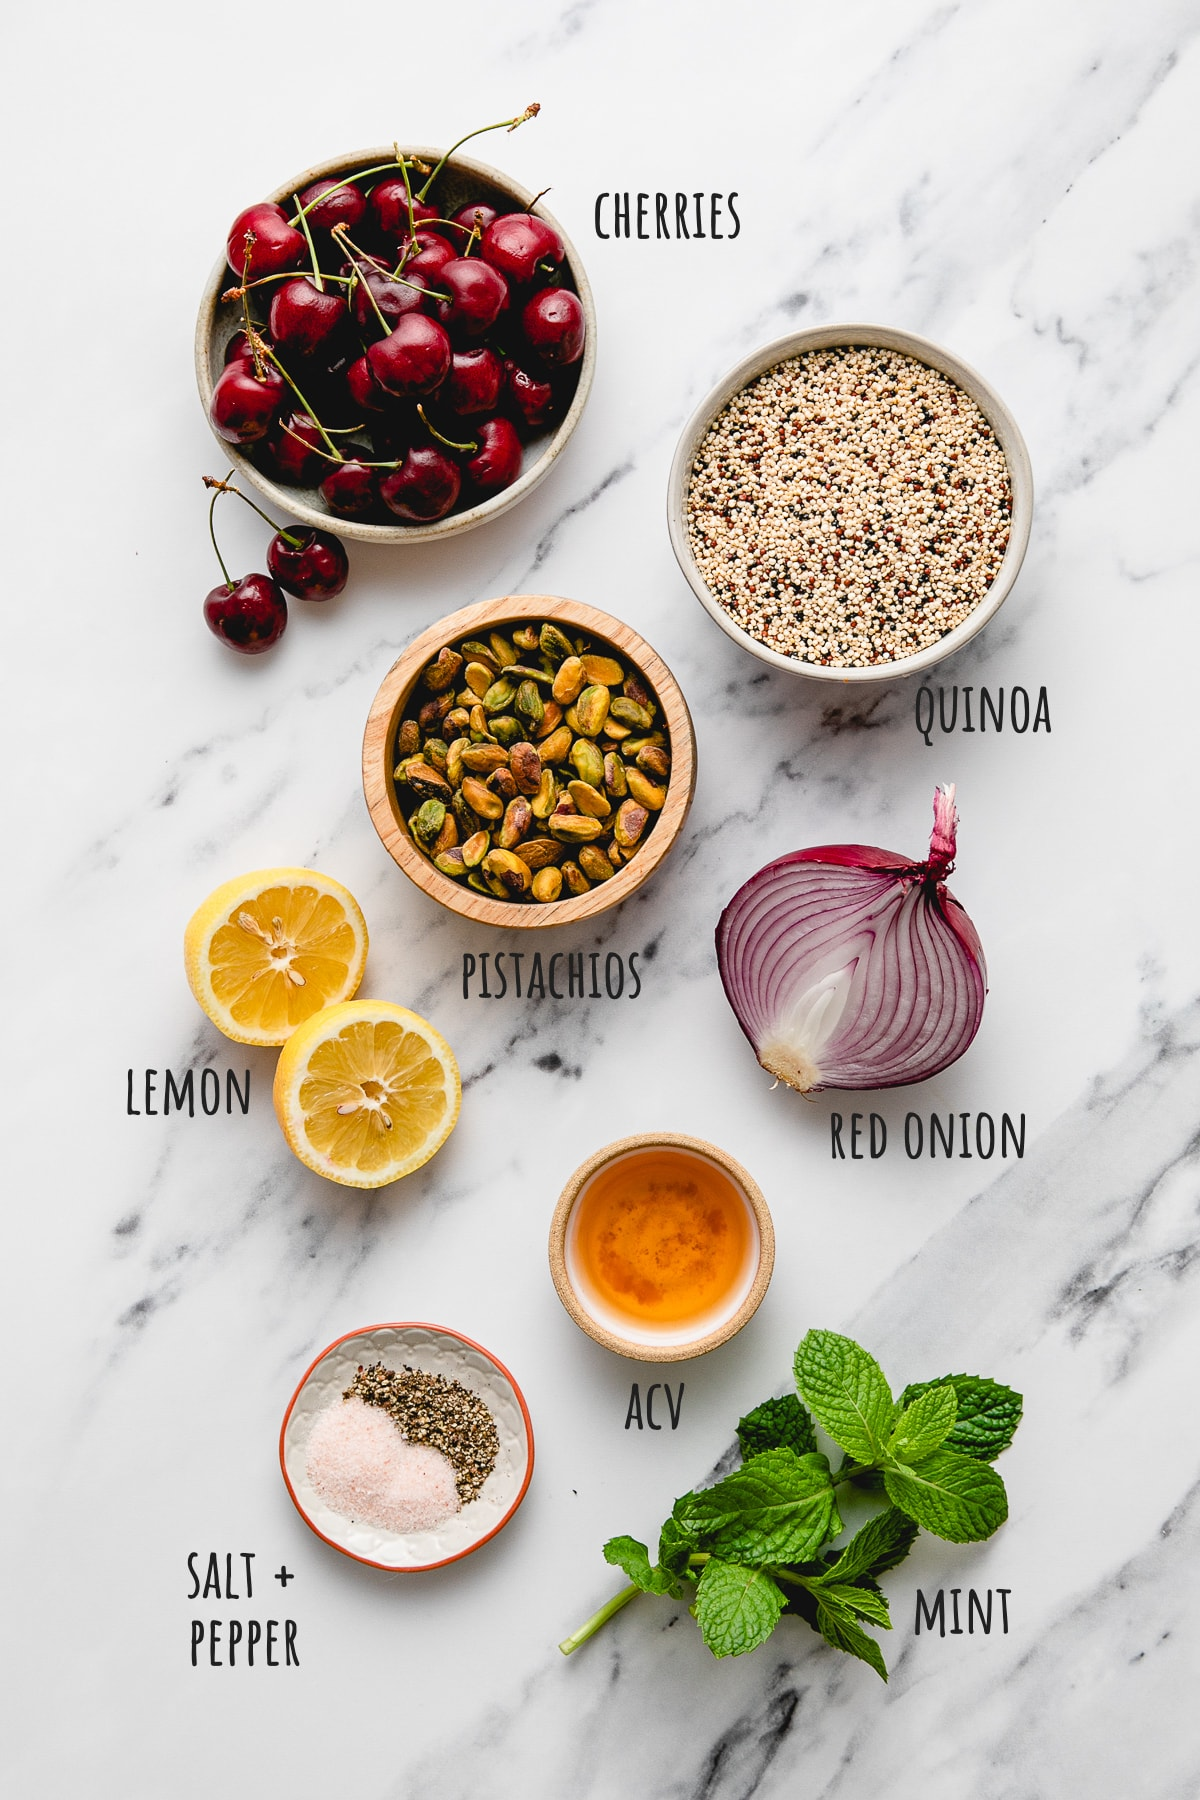 top down view of ingredients used to make cherry pistachio quinoa salad recipe.